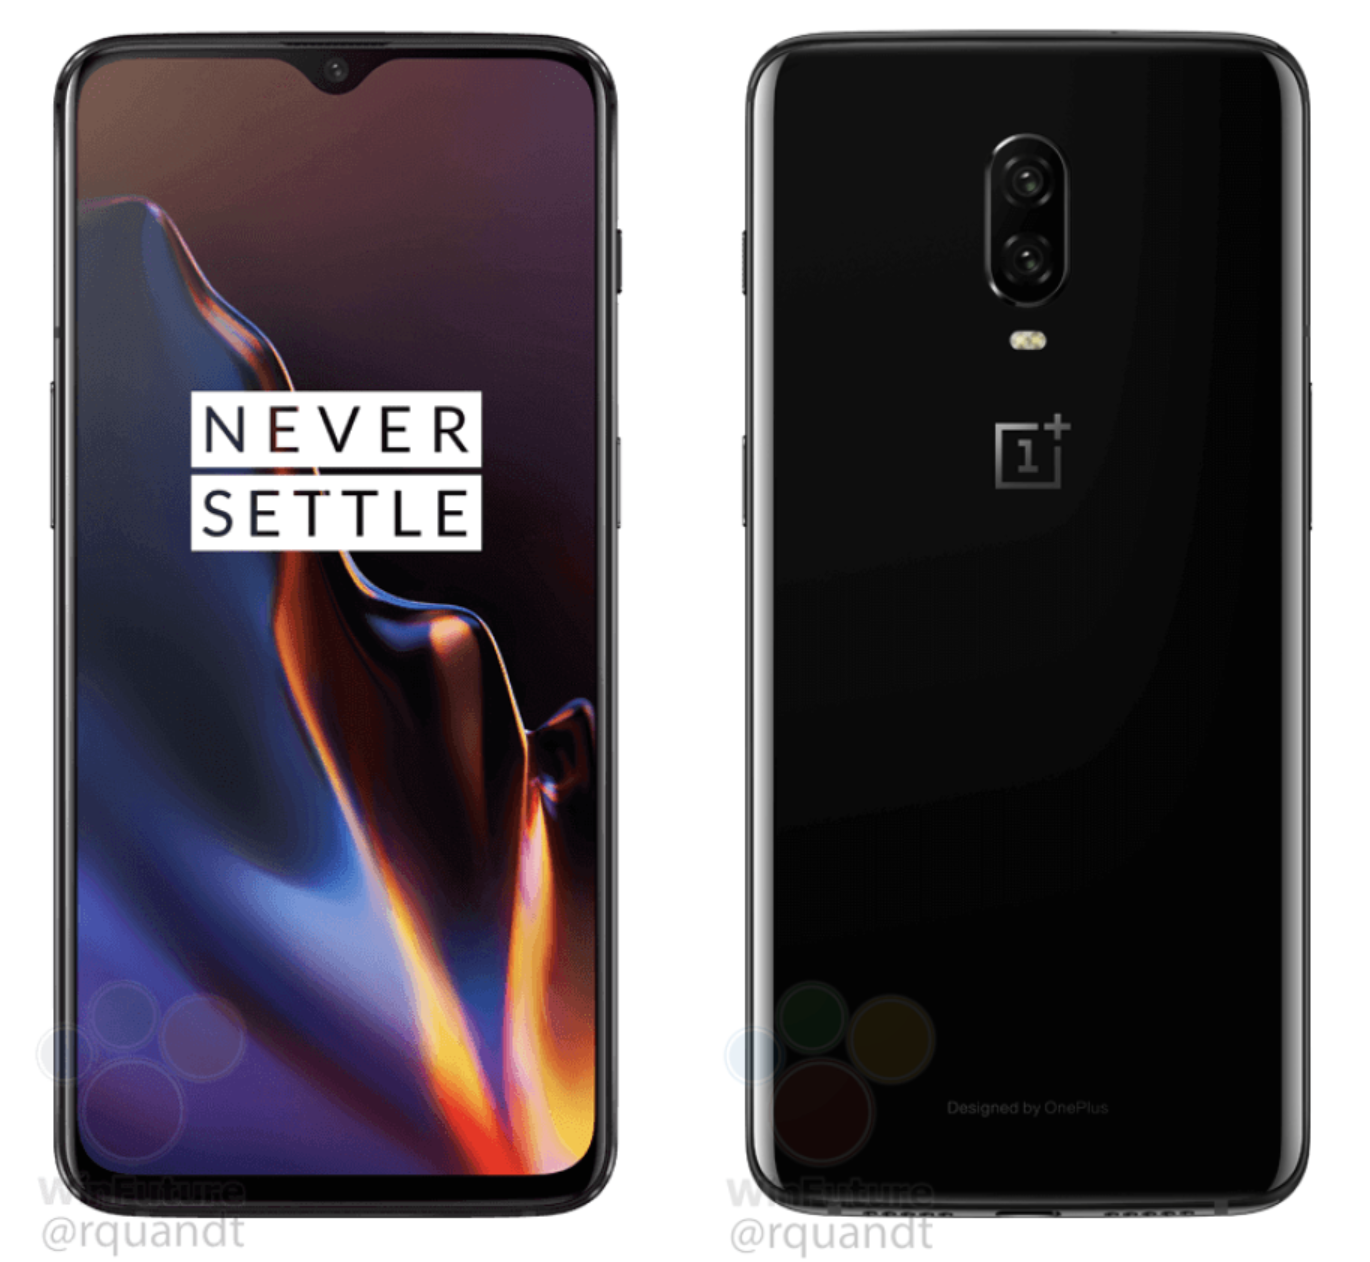 Leaked Oneplus 6t Renders Confirm Mirror Black And